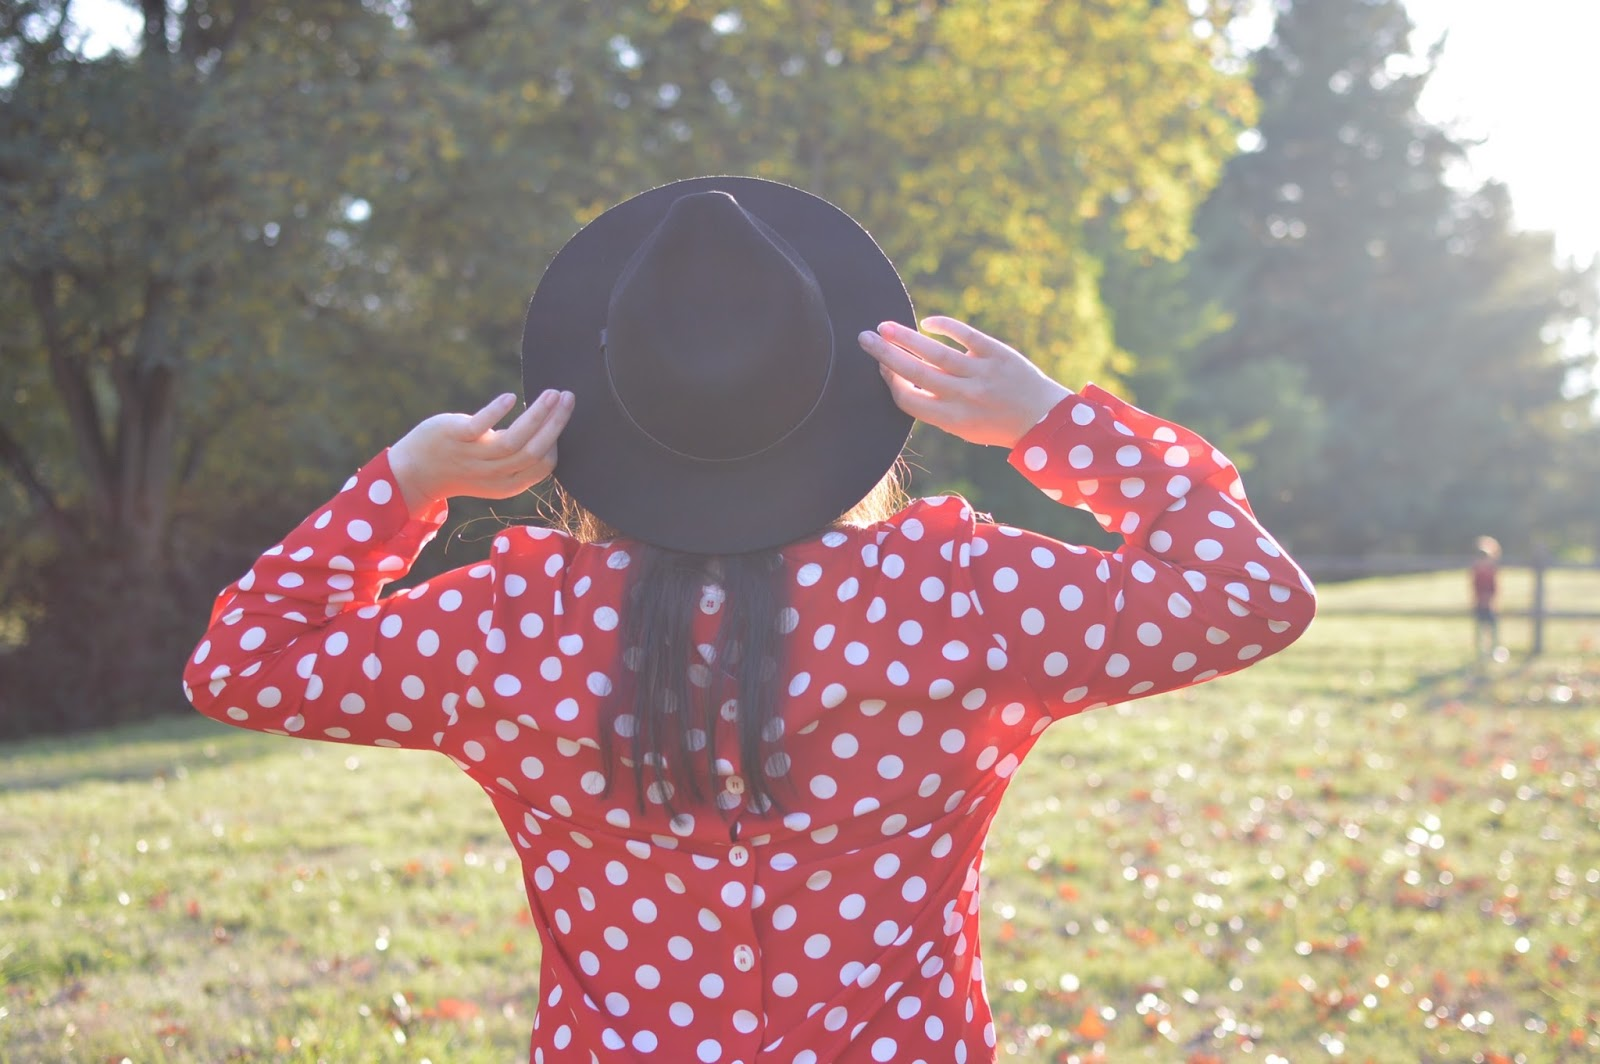 Vintage Polka Dot Blouse - Style for the Camera